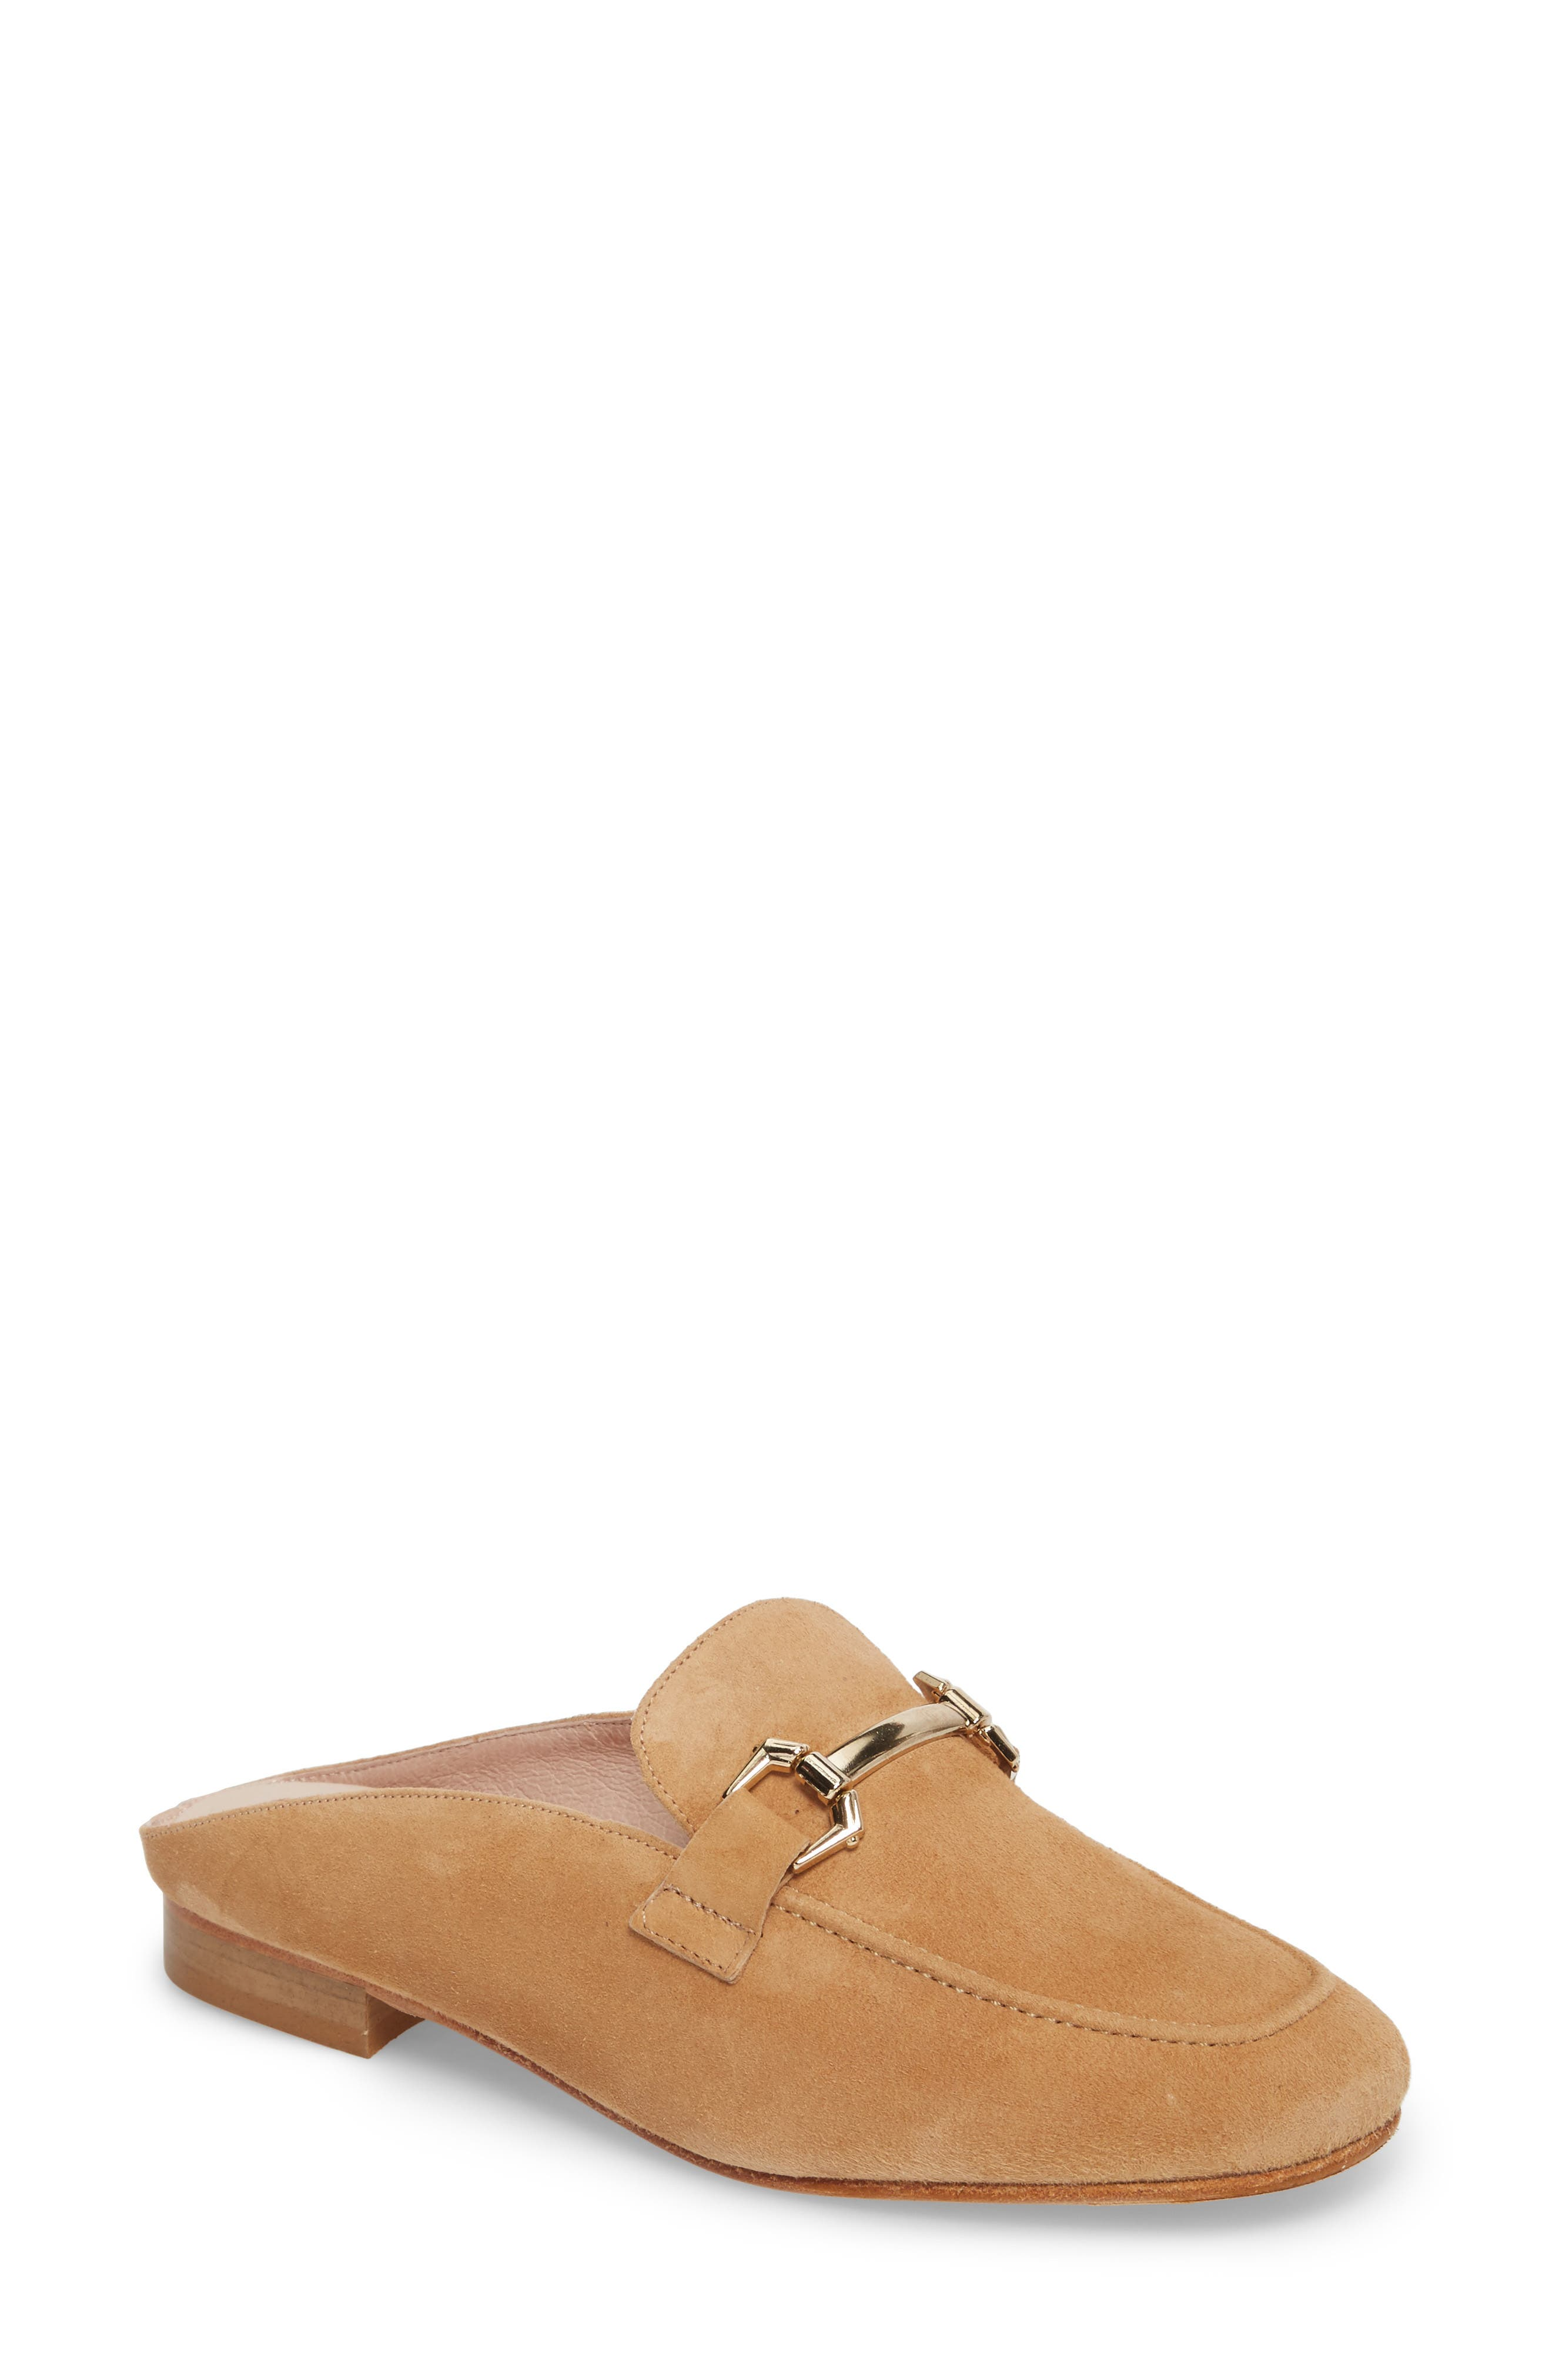 Sorrento Too Mule,                             Main thumbnail 1, color,                             Camel Suede